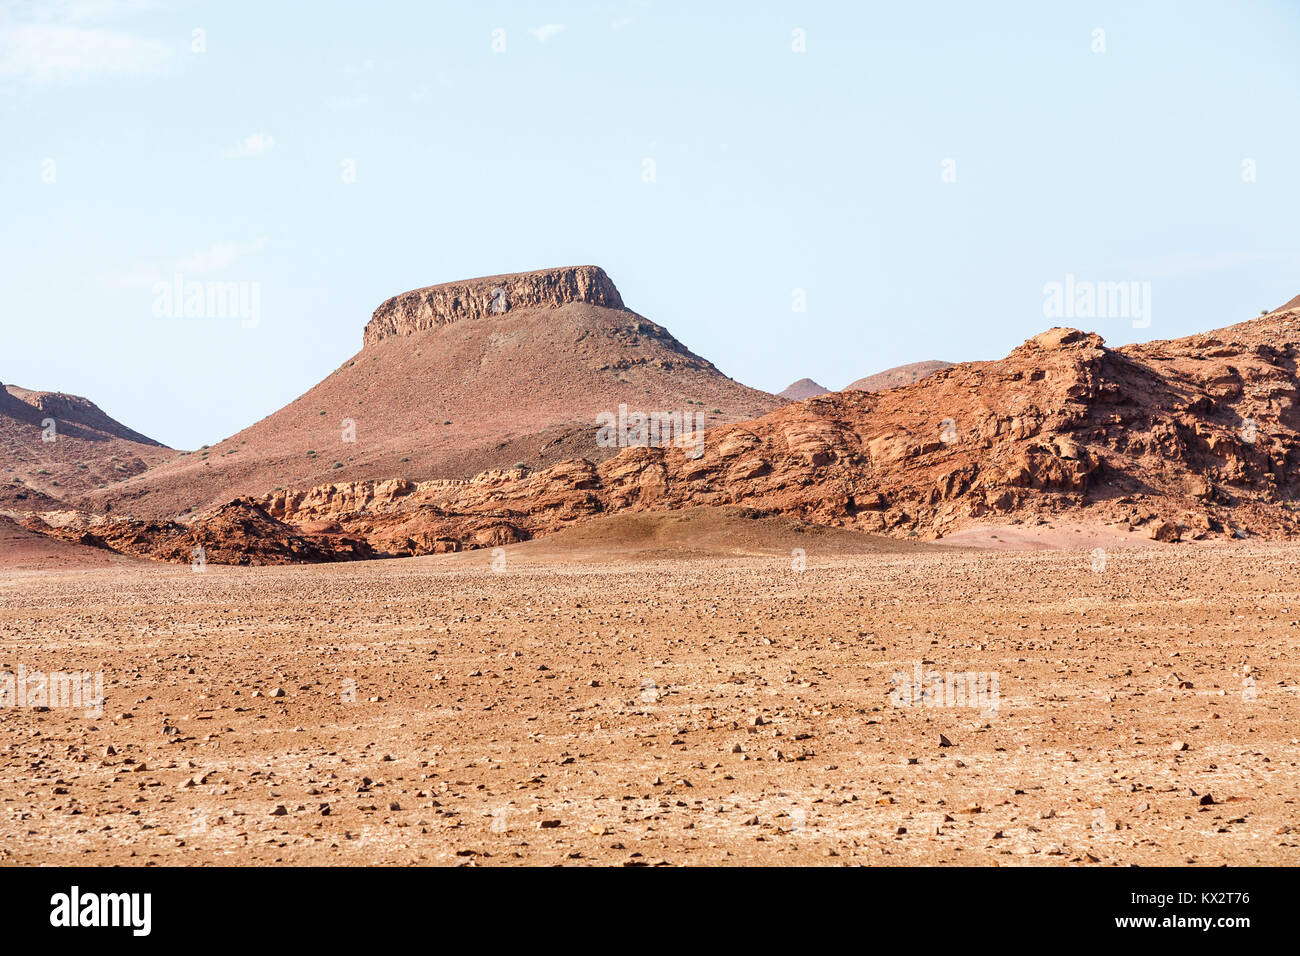 Volcanic plug igneous intrusion: arid mountainous landscape with table-top rock formation in the Skeleton Coast - Stock Image